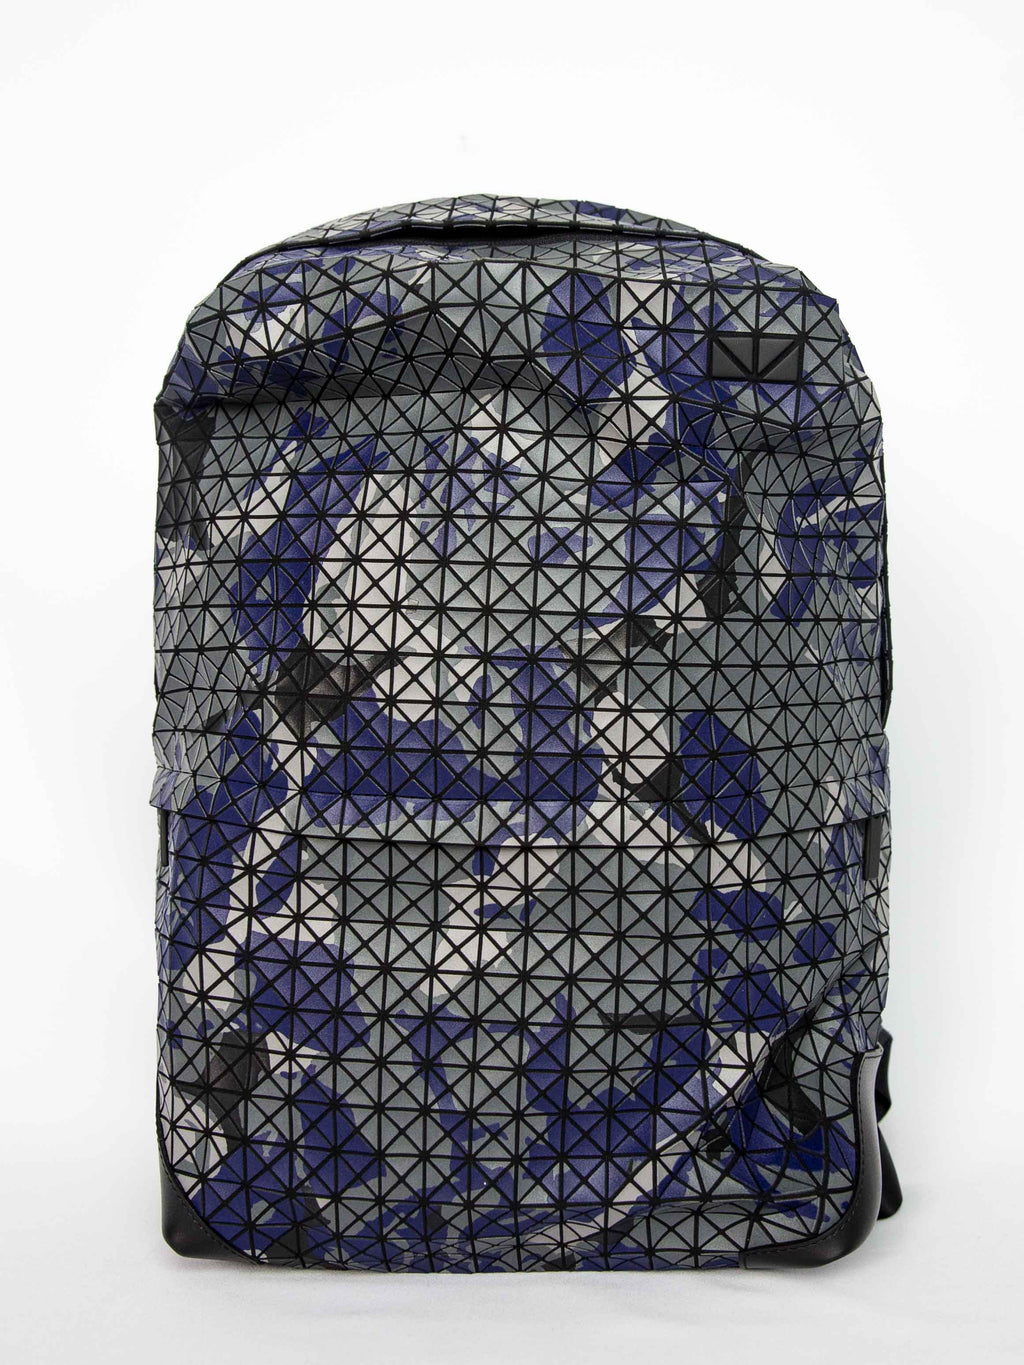 Kuro Liner Backpack - Blue Mix